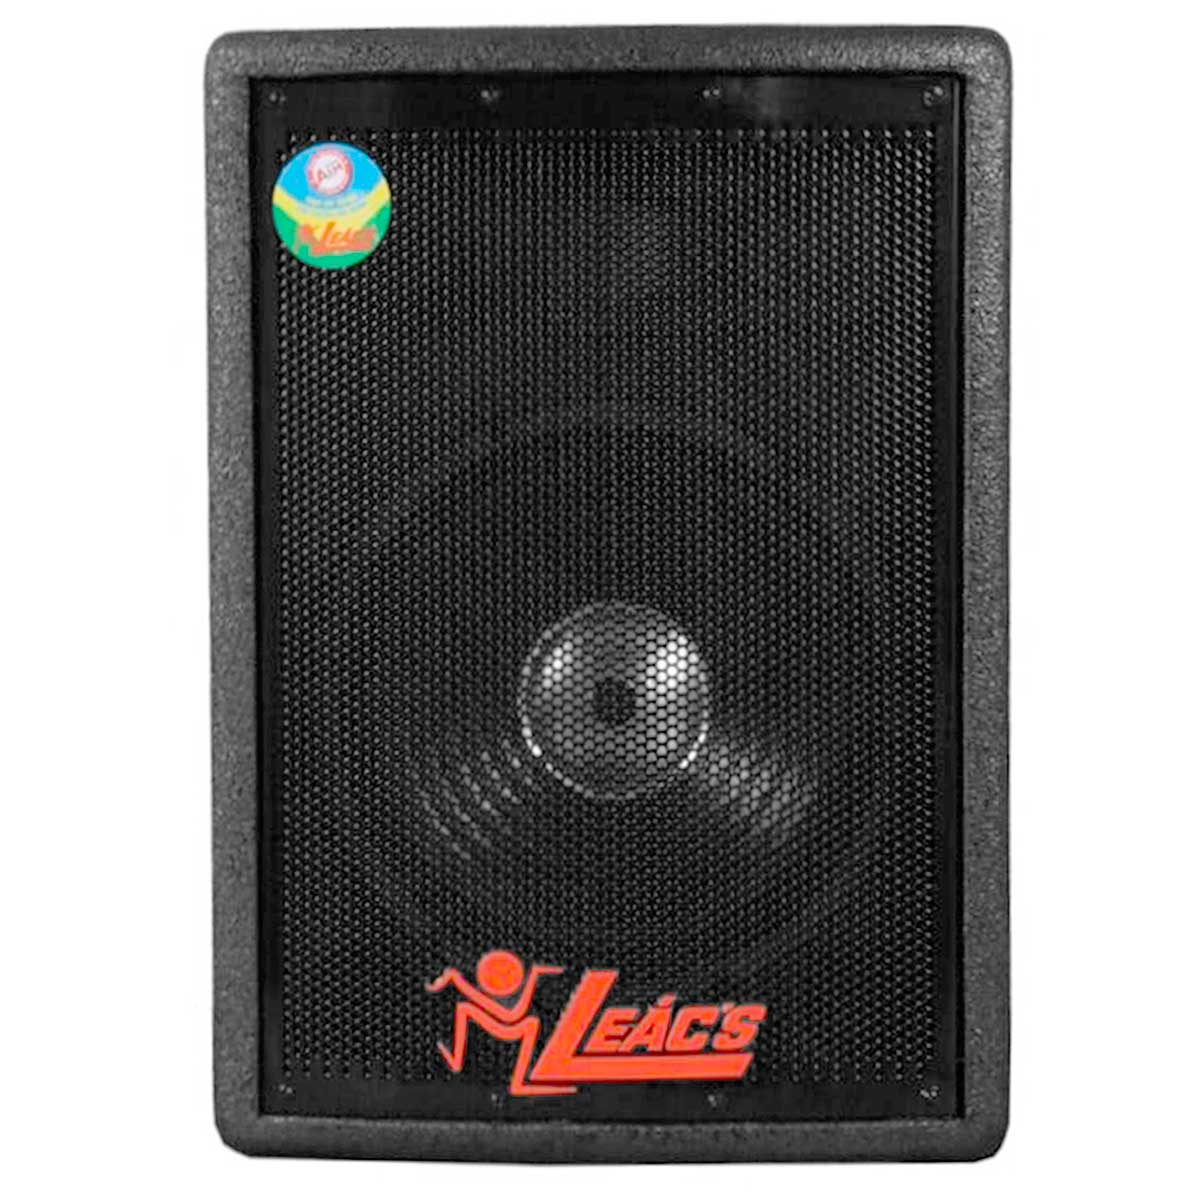 Pulps250 - Caixa Passiva 100W Pulps 250 - Leacs